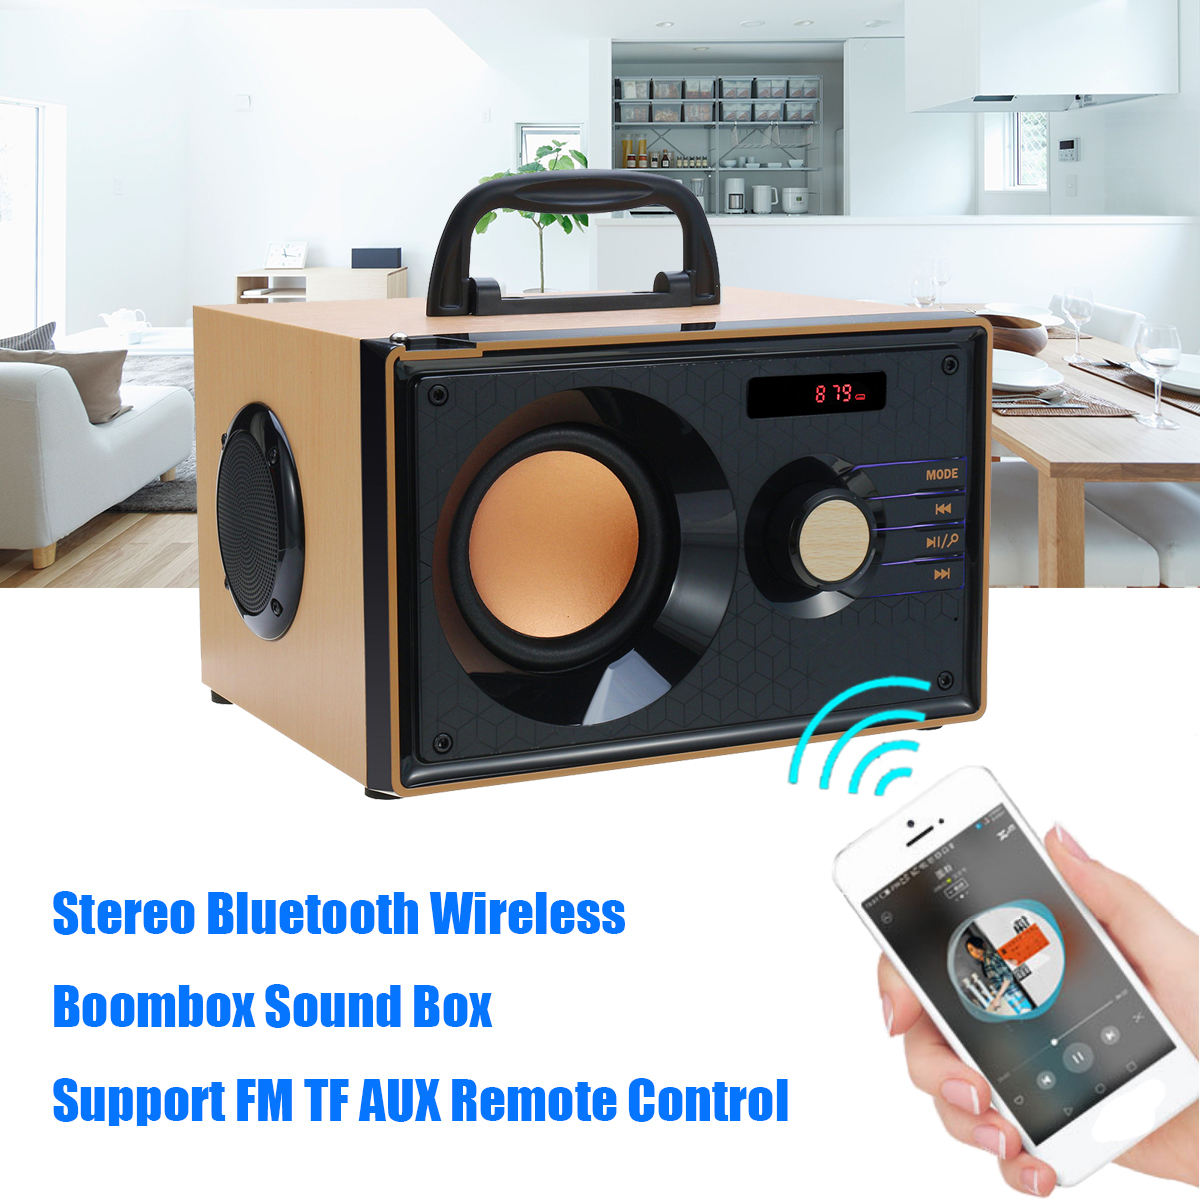 Stereo Bluetooth Speaker Subwoofer Heavy Bass Wireless Big Speakers Boombox Sound Box Support FM TF Home Theater Amplifiers 3 speakers bluetooth speaker wireless stereo subwoofer heavy bass speaker music player support tf card fm radio boombox